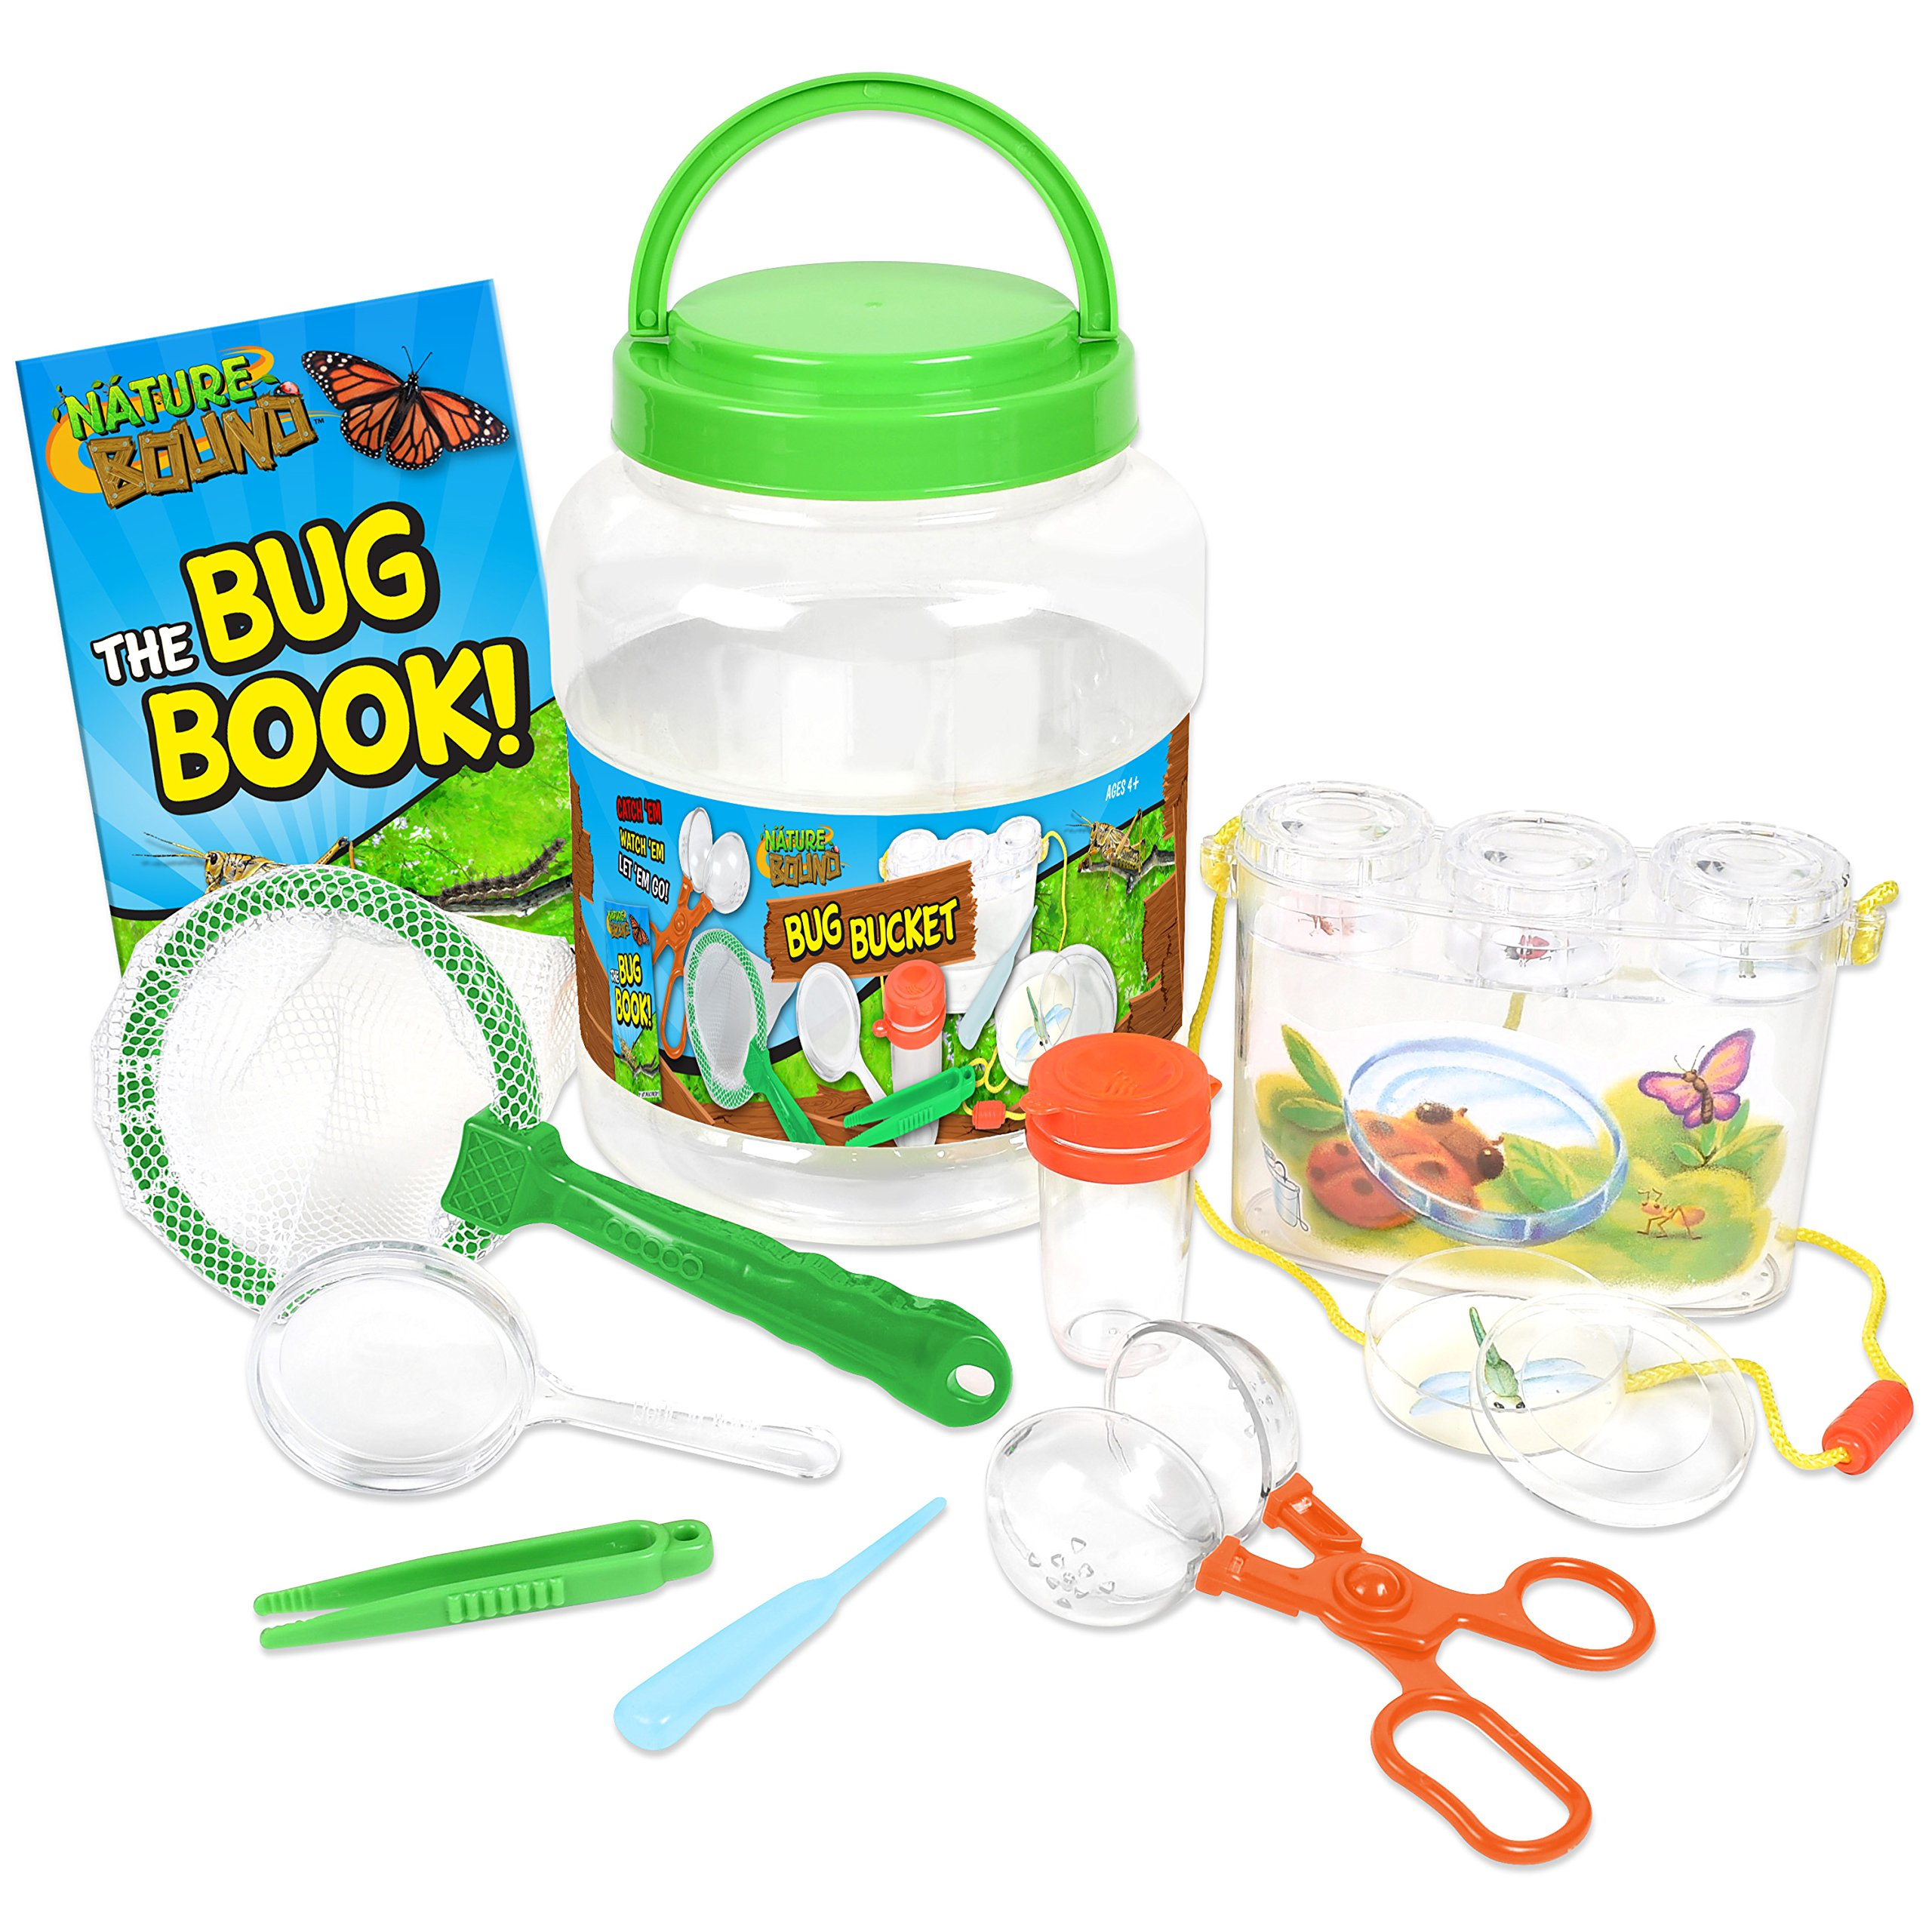 Nature Bound NB535 Bug Catcher with Habitat Bucket and 7 Piece Nature Exploration Set, Green (Pack of 14)